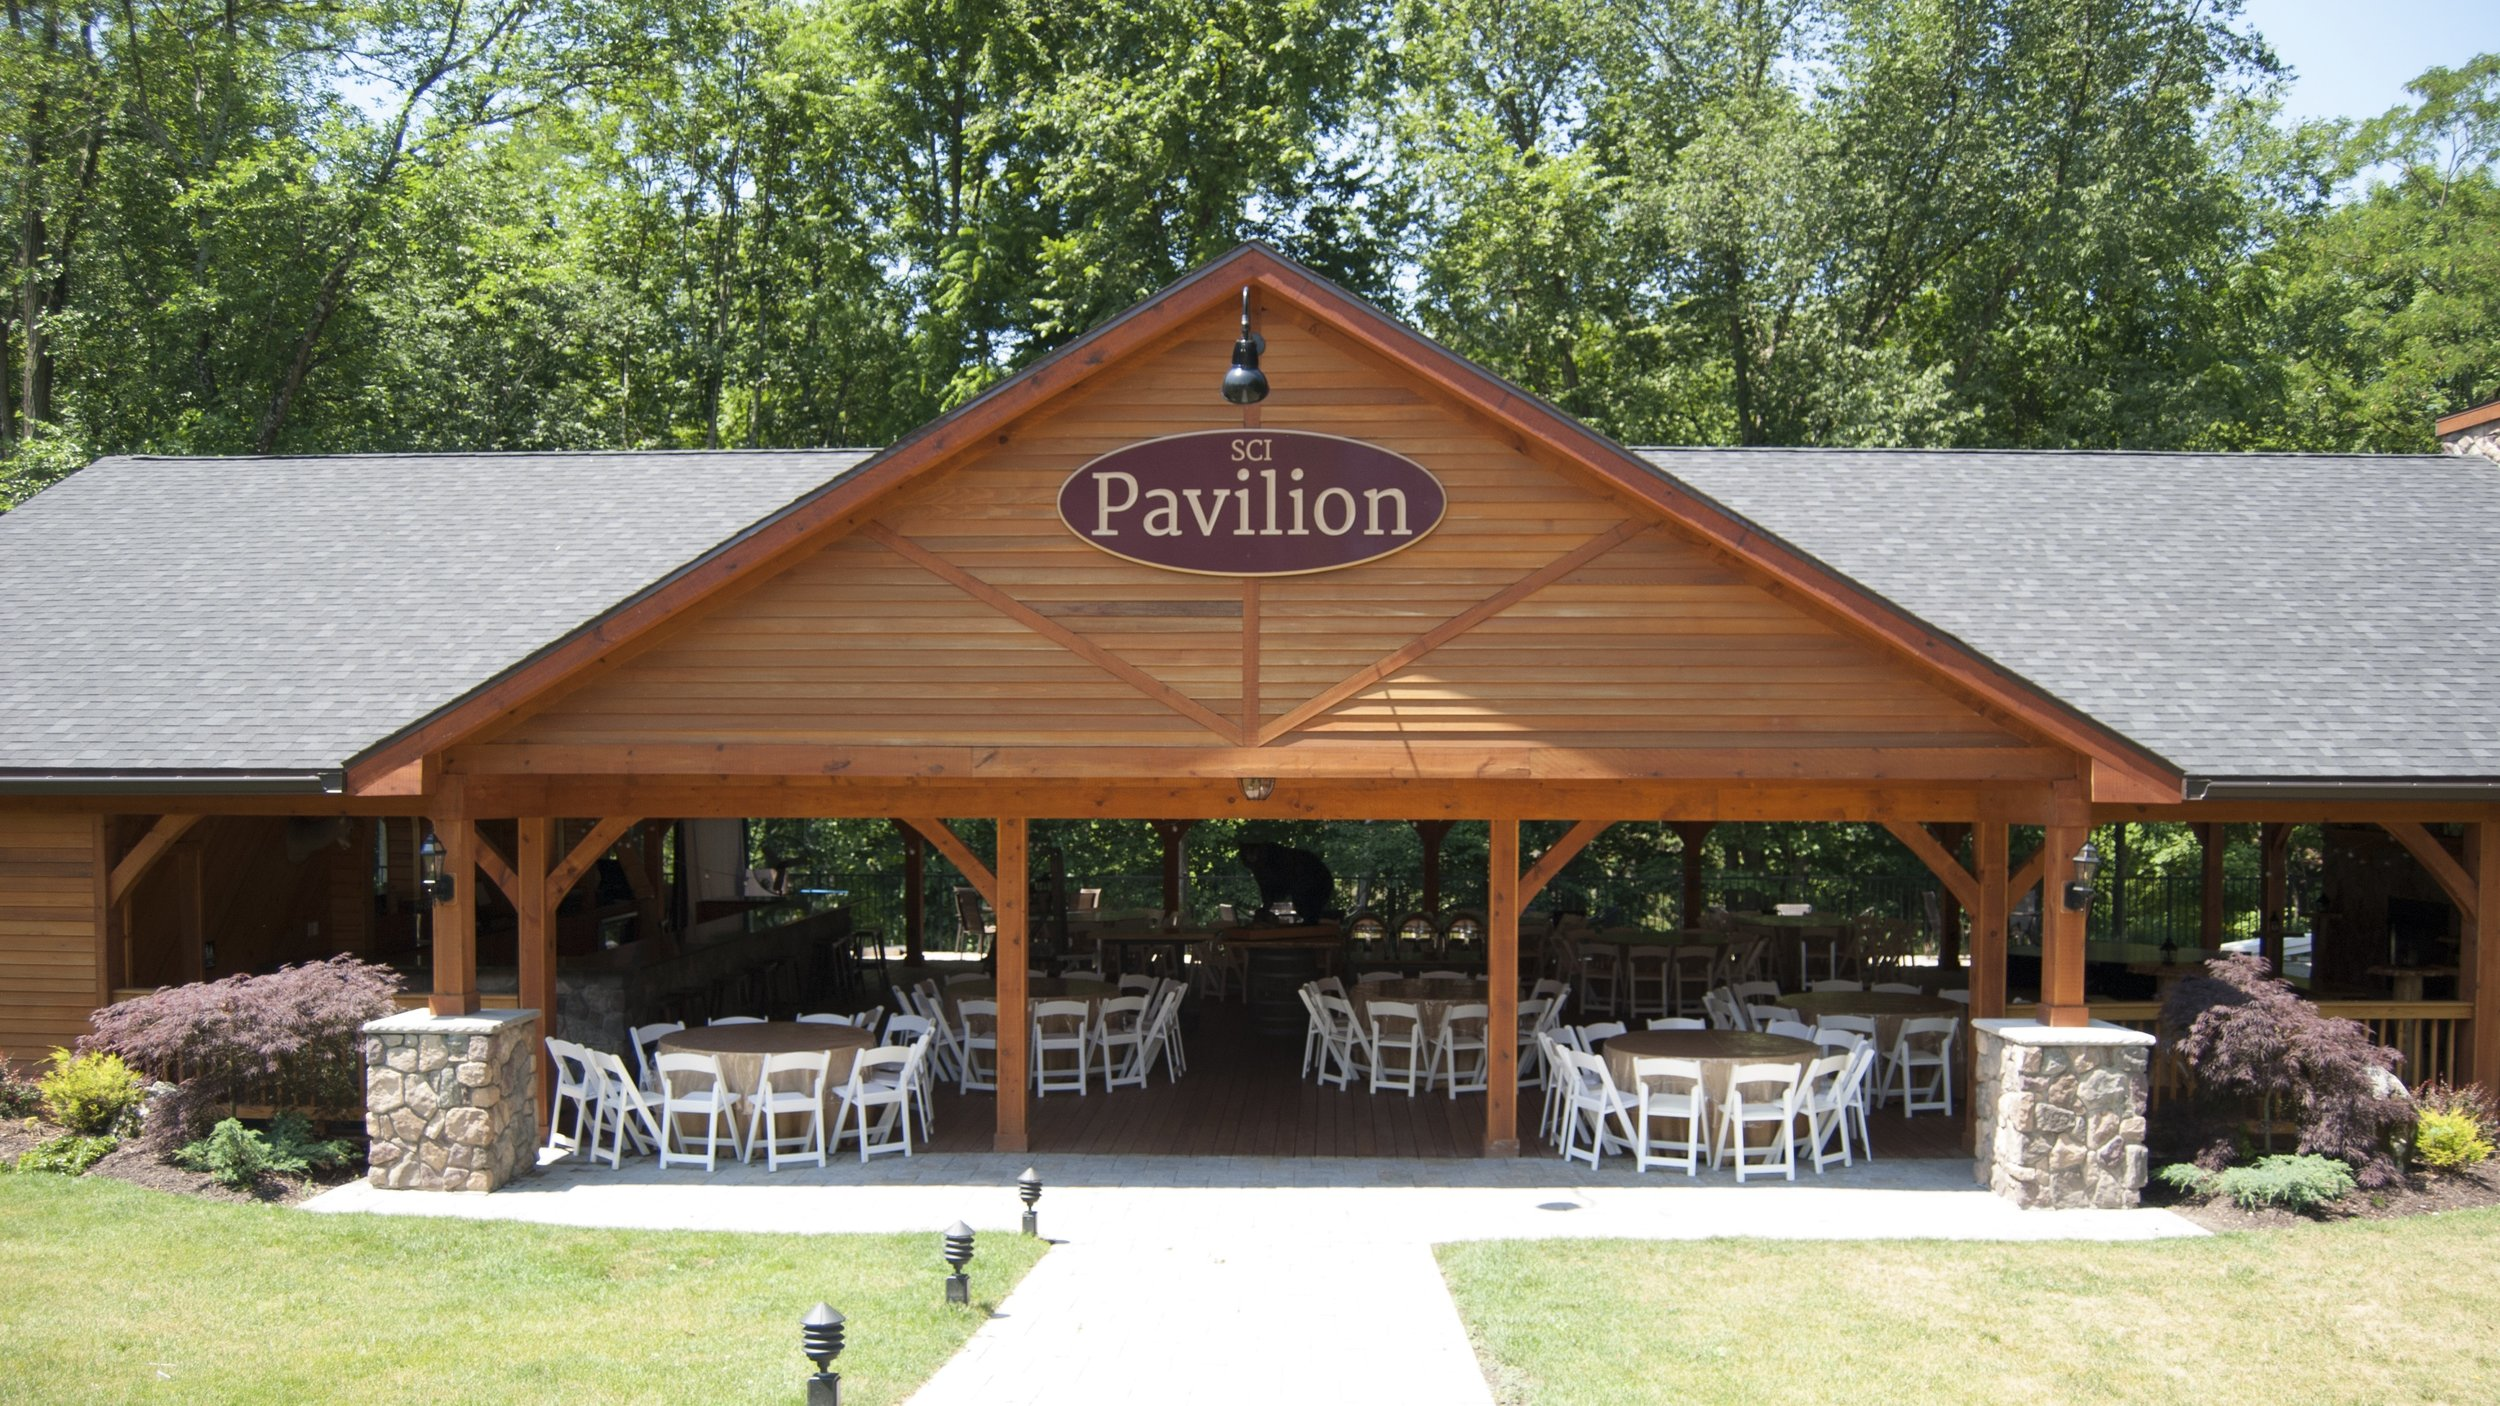 The Pavilion at Stroudsmoor Inn Stroudsburg, PA